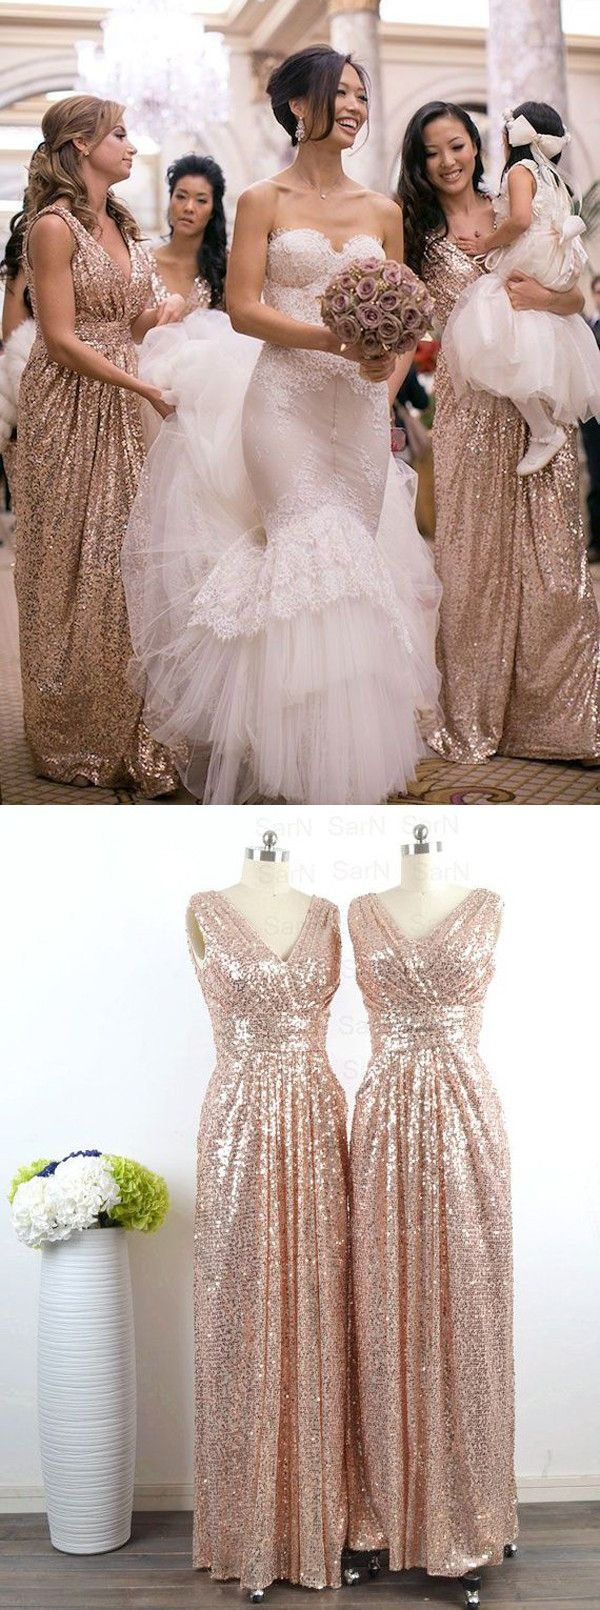 17 Best ideas about Bridal Party Dresses on Pinterest | Bridal ...